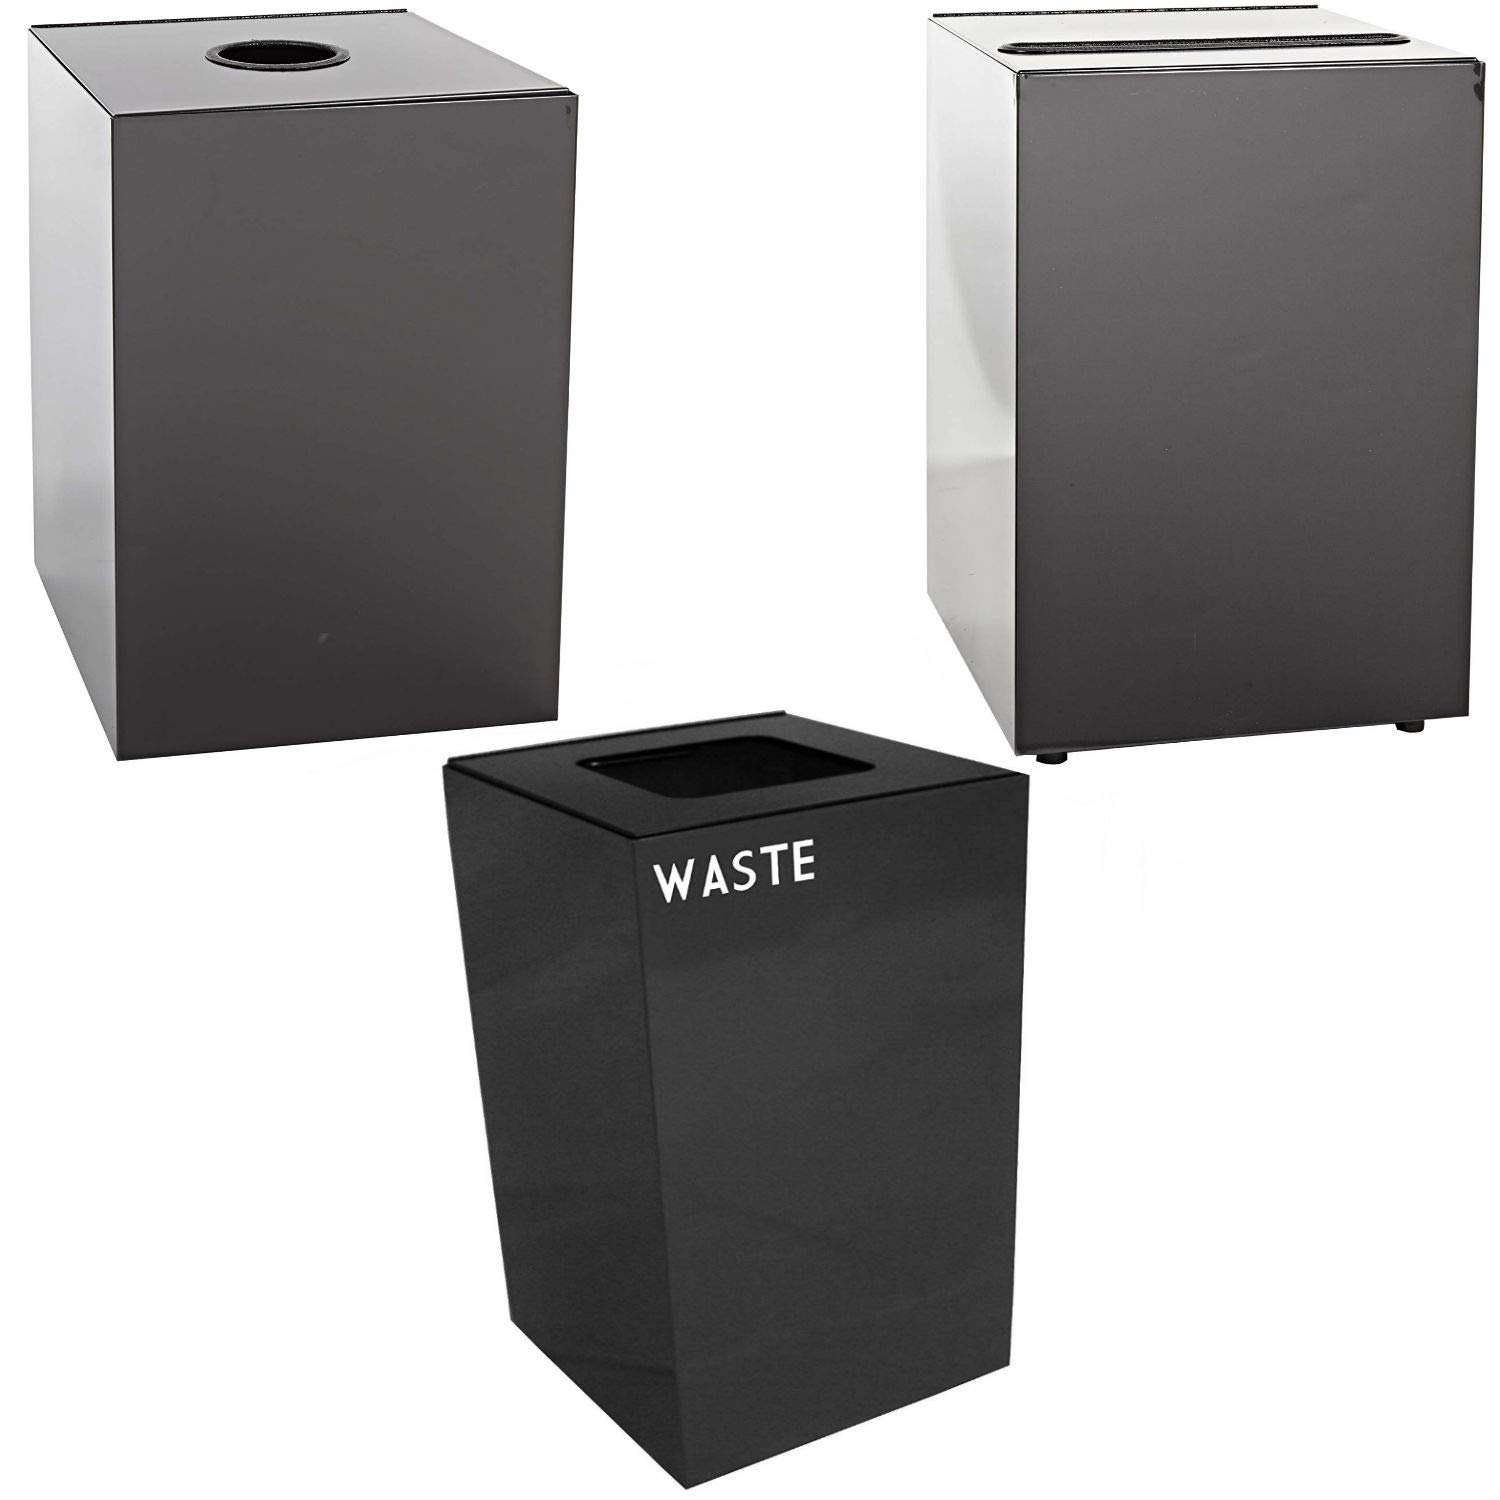 Witt Industries Steel 28-Gallon Geo Cube Recycling Container, Round Opening, Legend Cans, Slot Opening, Legend Newspaper & Square Opening, Legend Waste Square, Charcoal.